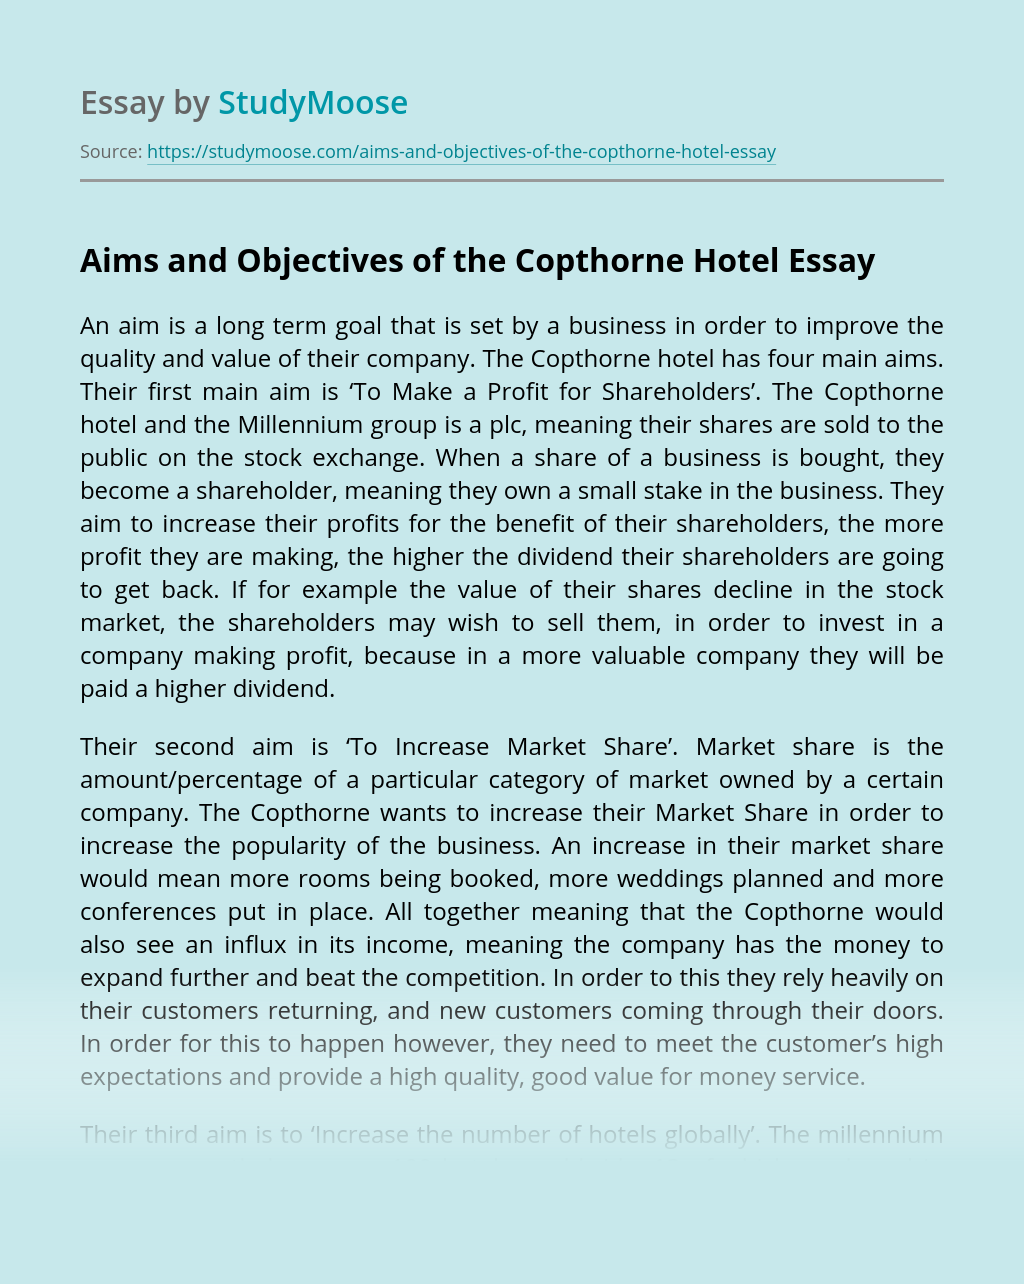 Aims and Objectives of the Copthorne Hotel